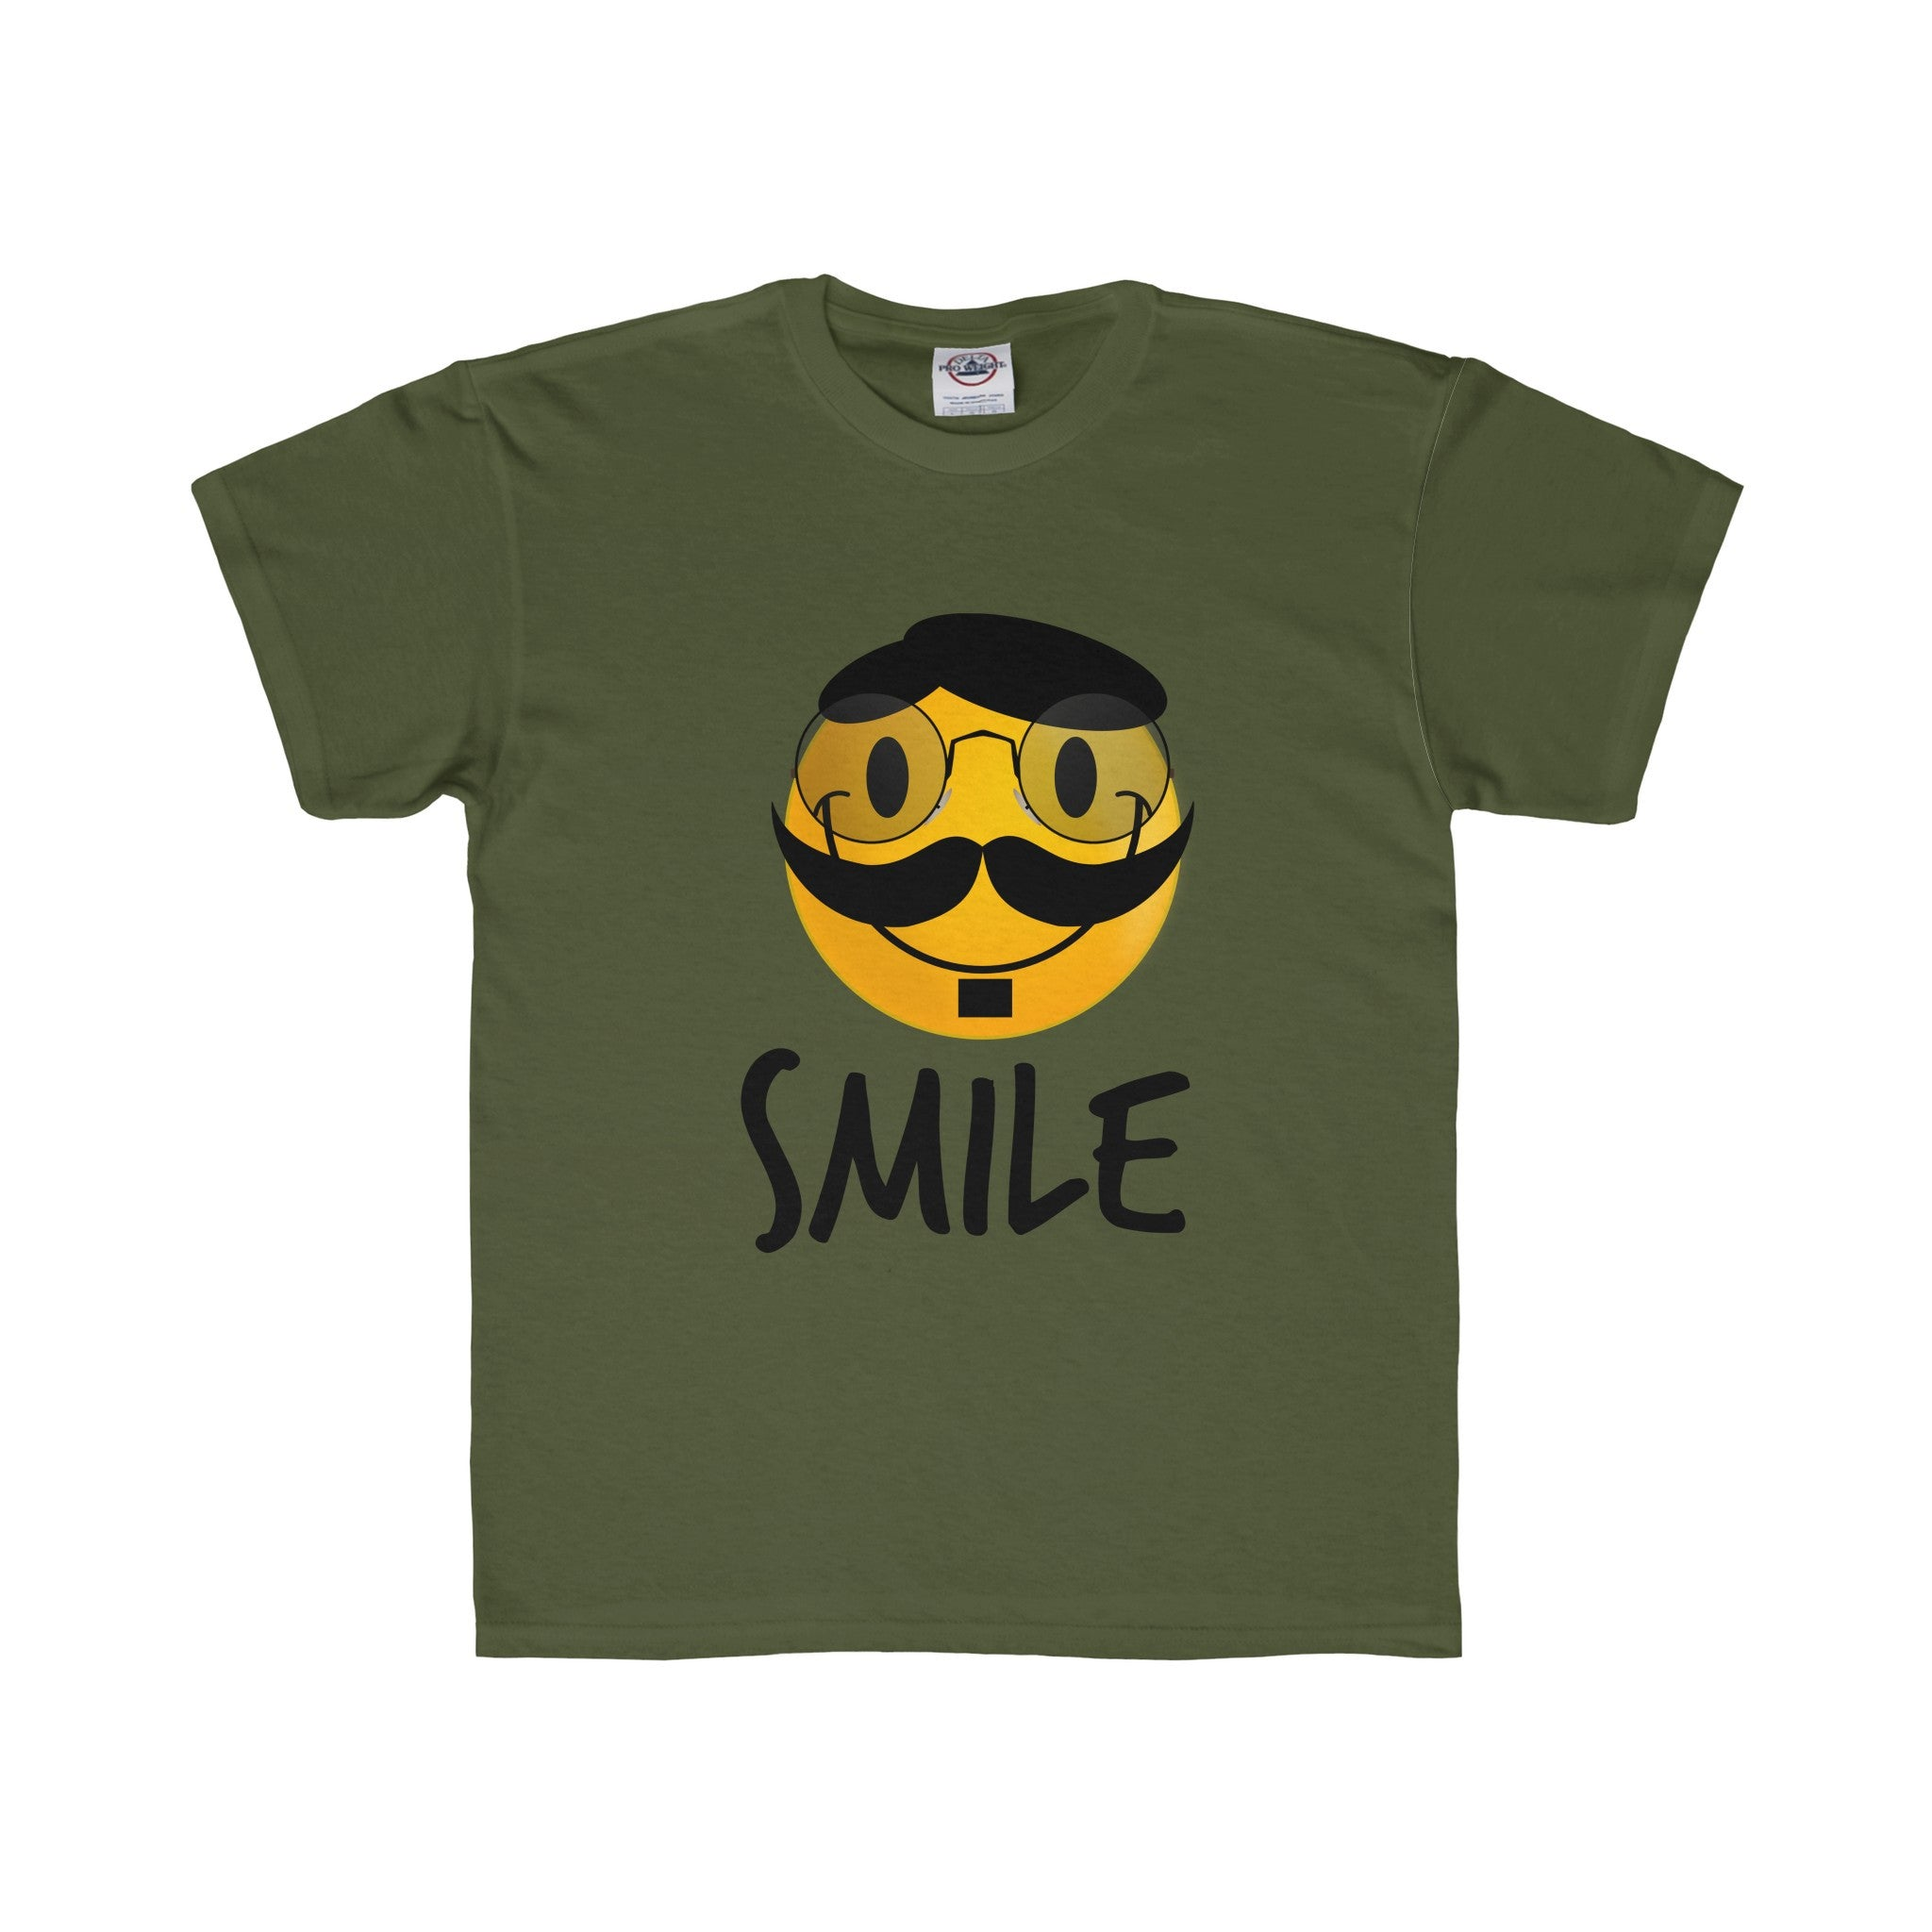 Professor Smiley Face Tee (5 colors available)